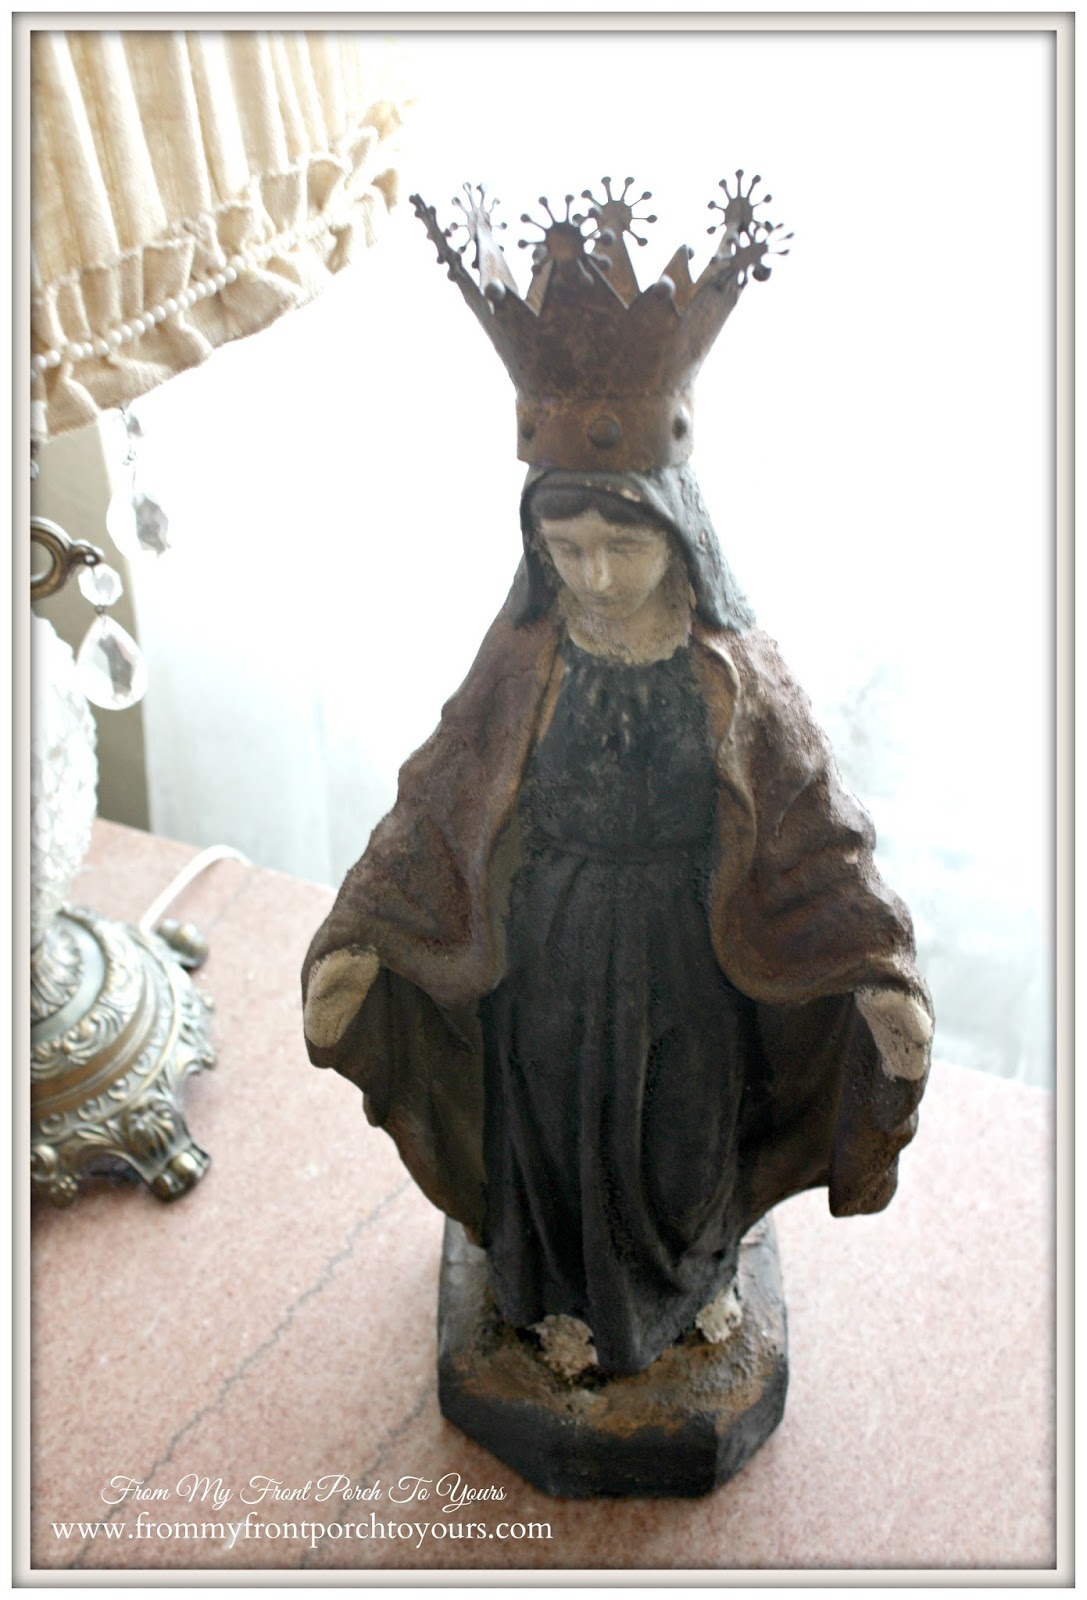 Creative Co-Op Mary Statue with crown used to create a French Farmhouse vignette at From My Front Porch To Yours.